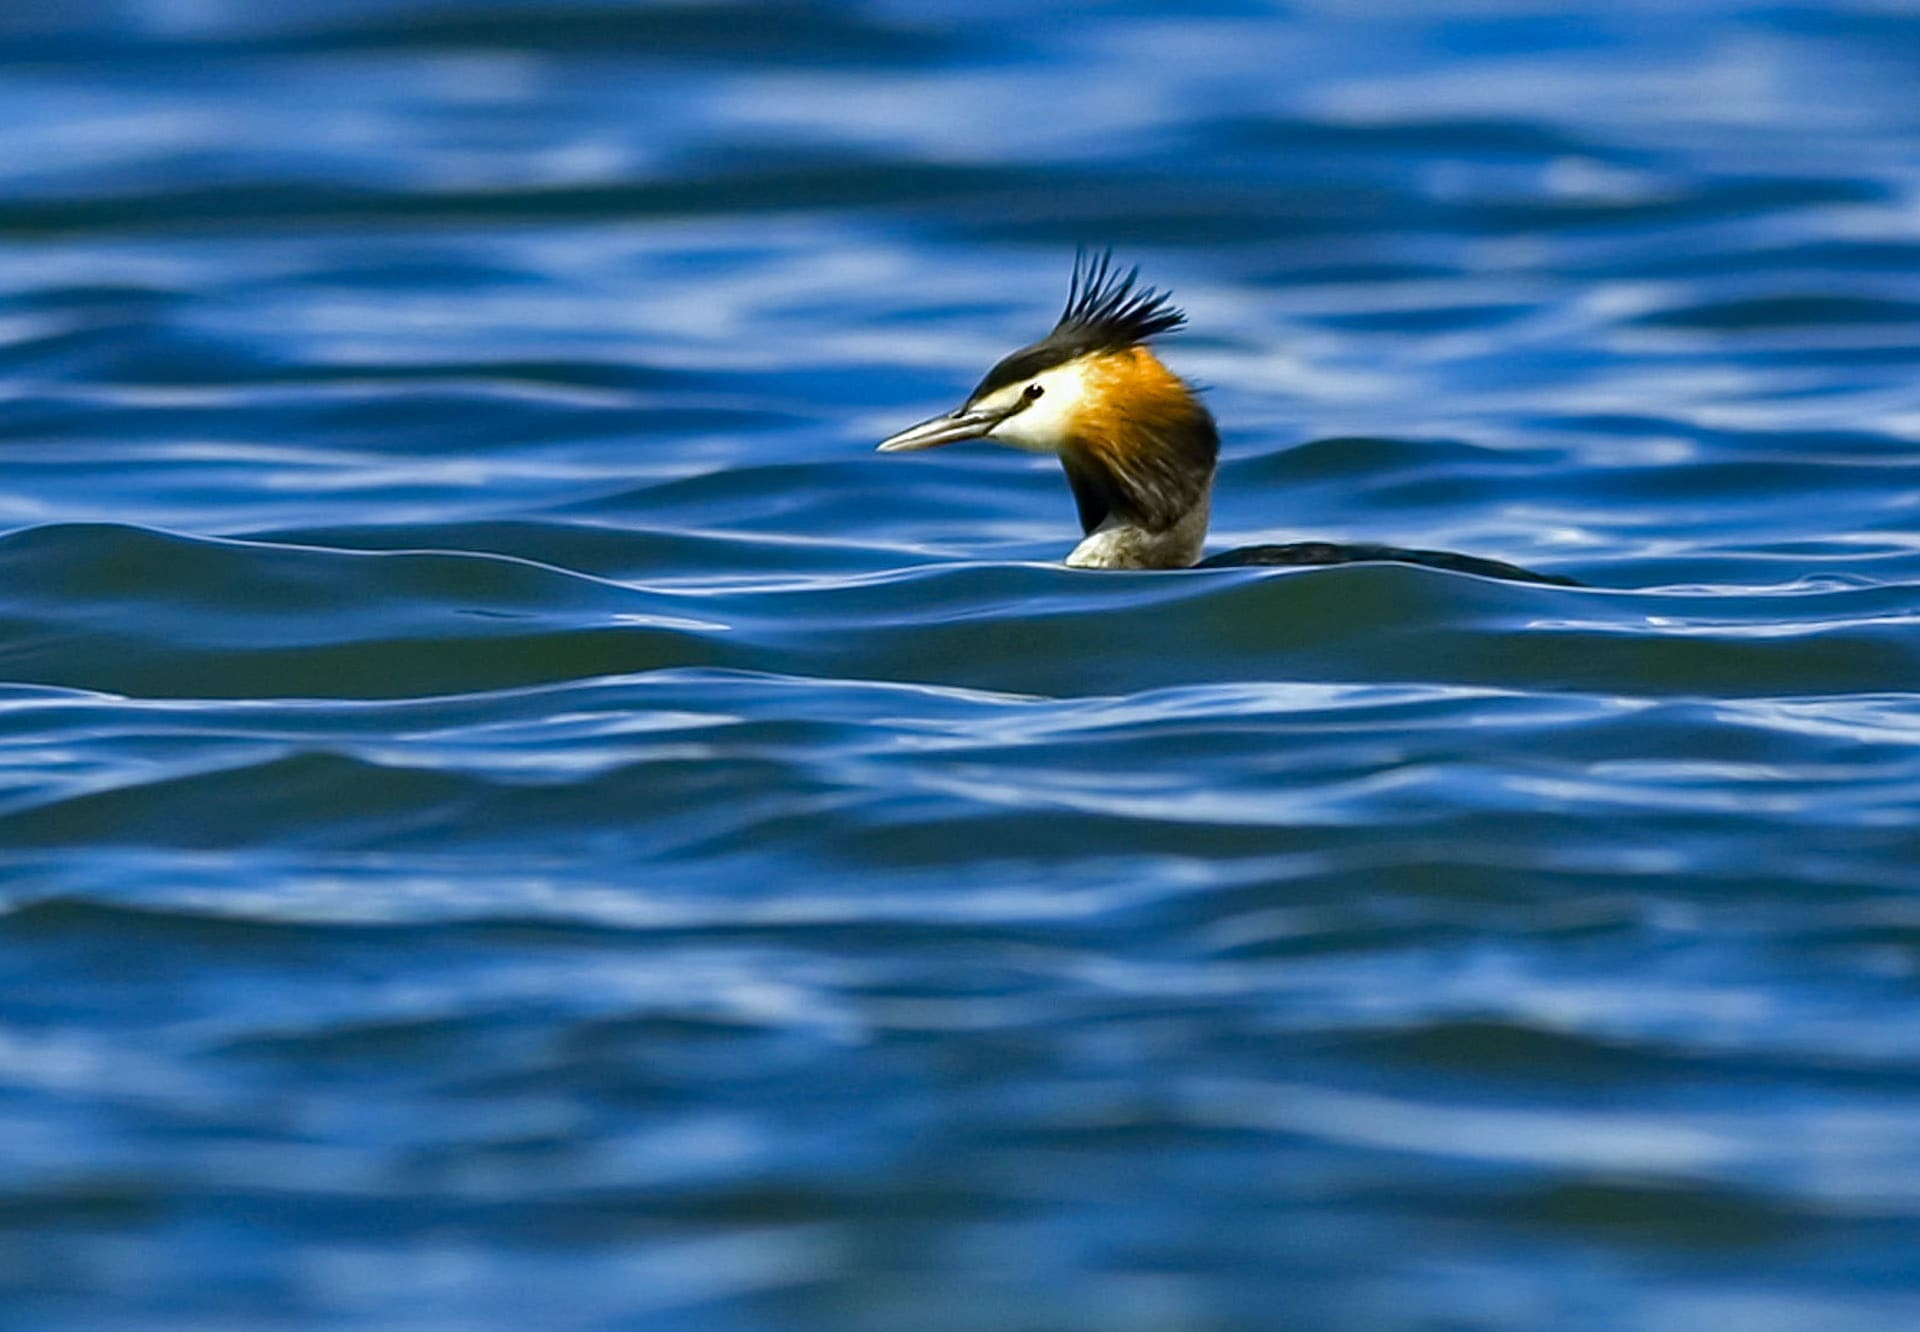 great crested grebe at Tso Moriri in Ladakh is threatened by rising tourist activity